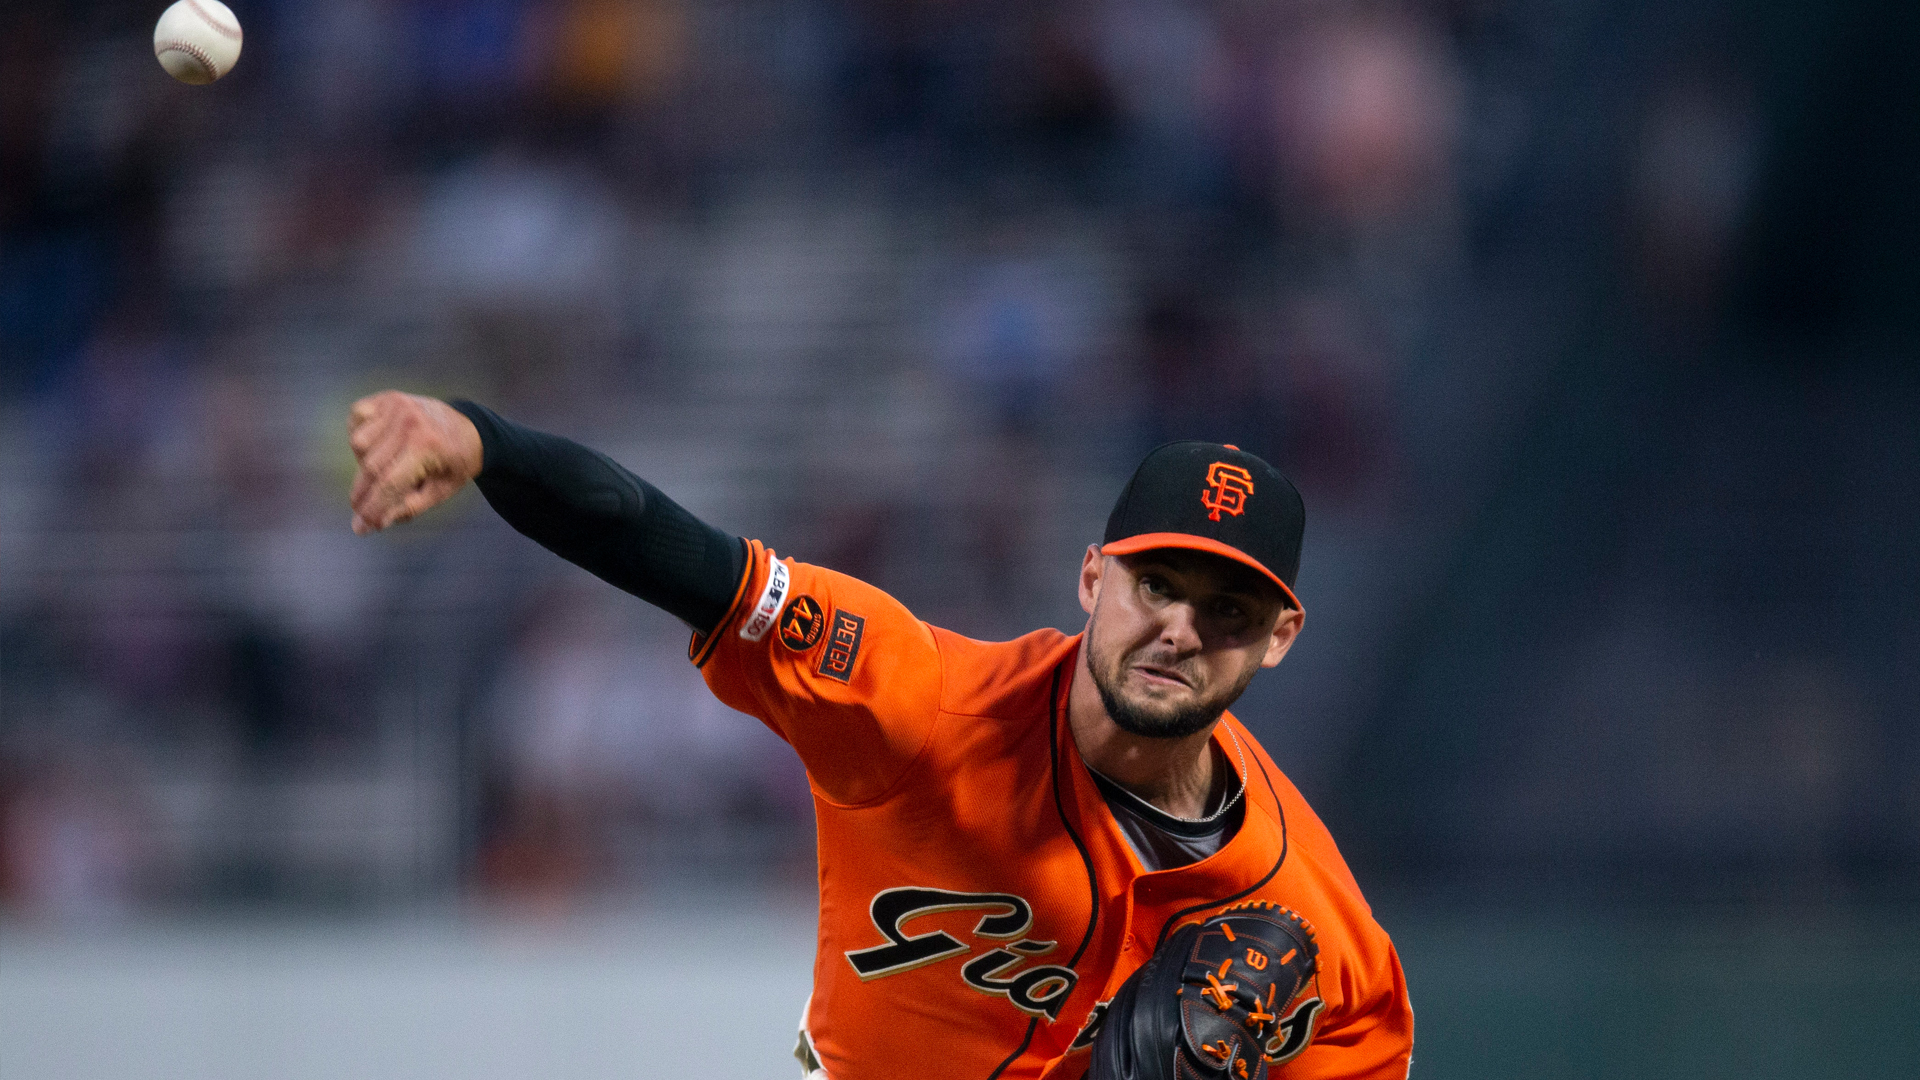 Tyler Beede shines on mound, Buster Posey drives in run in Giants'